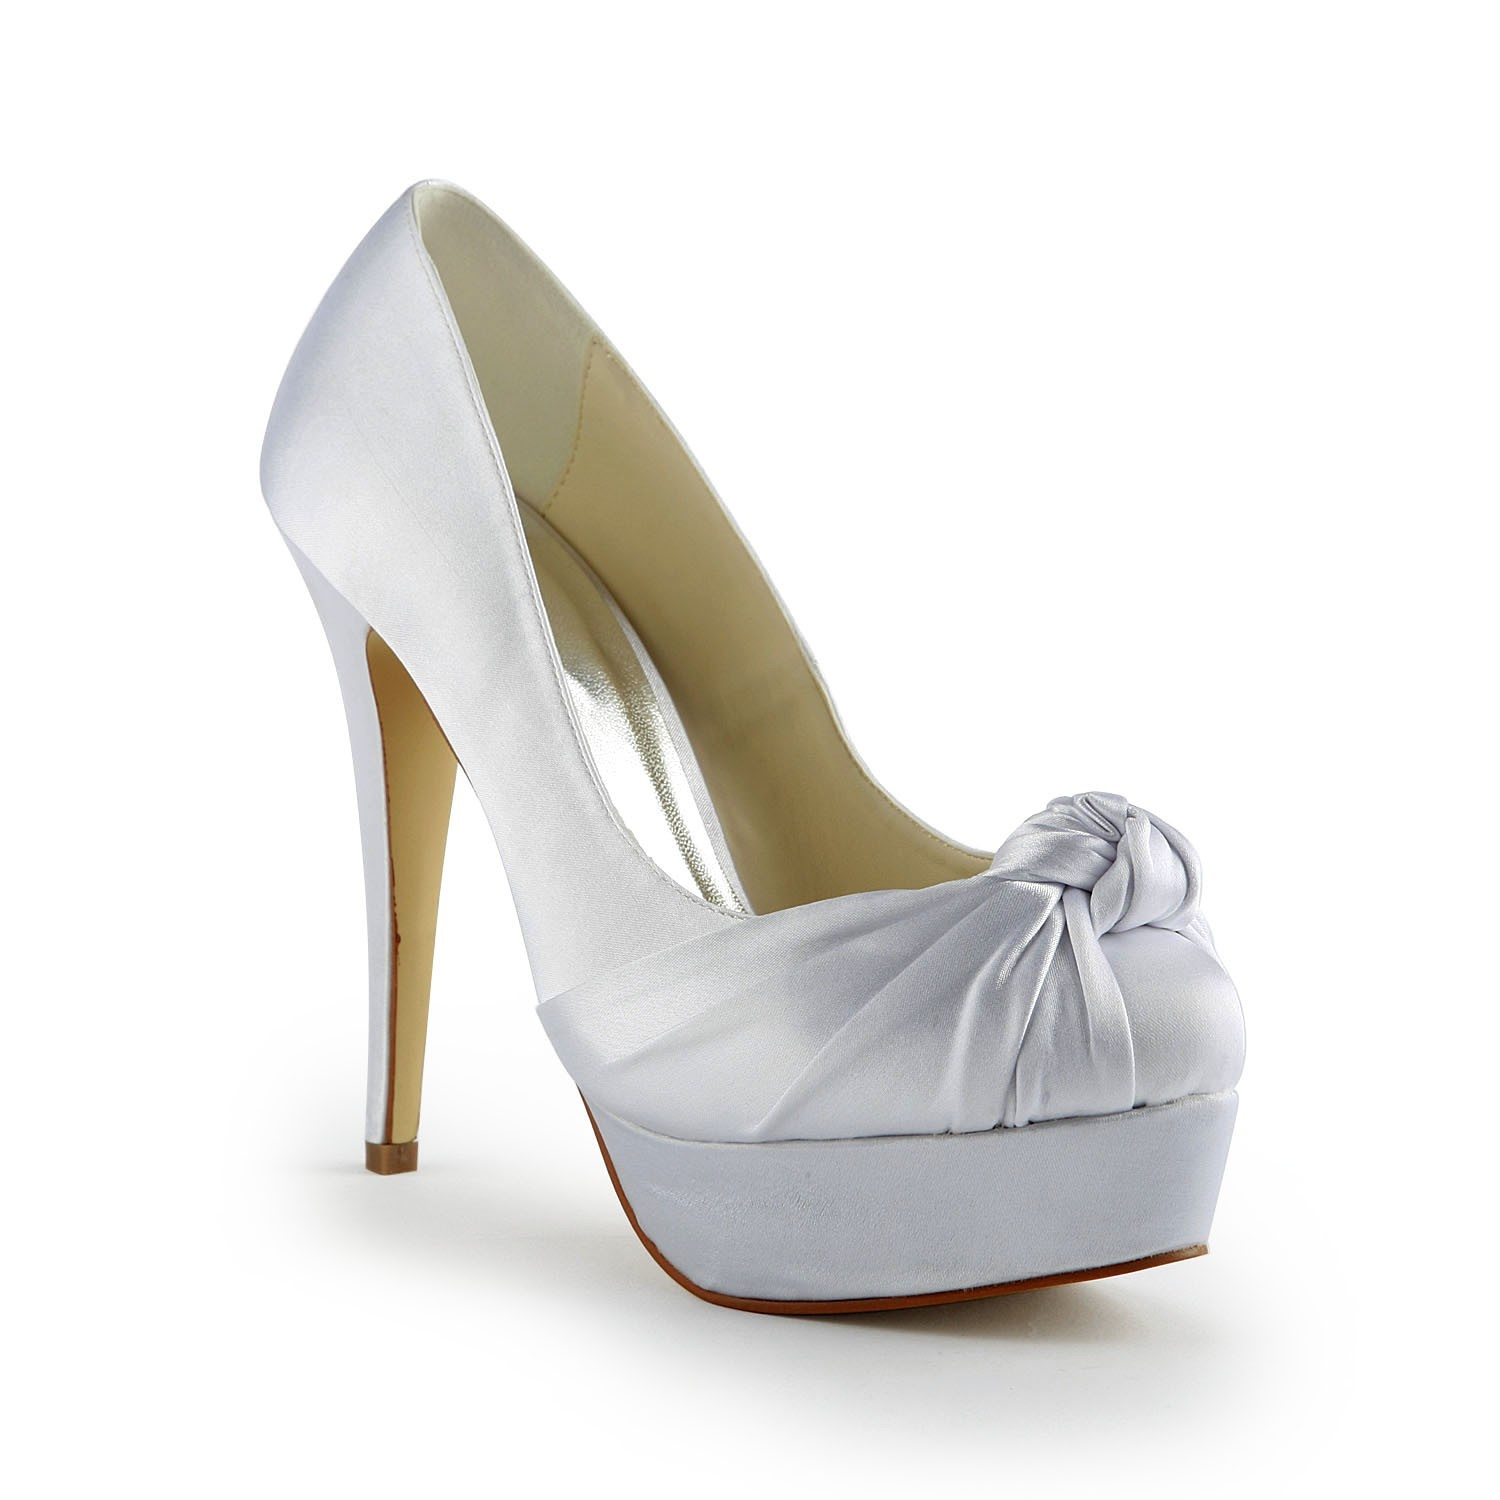 Chicregina Womens Gorgeous Satin Stiletto Heel Pumps Wedding Shoes with Ruched